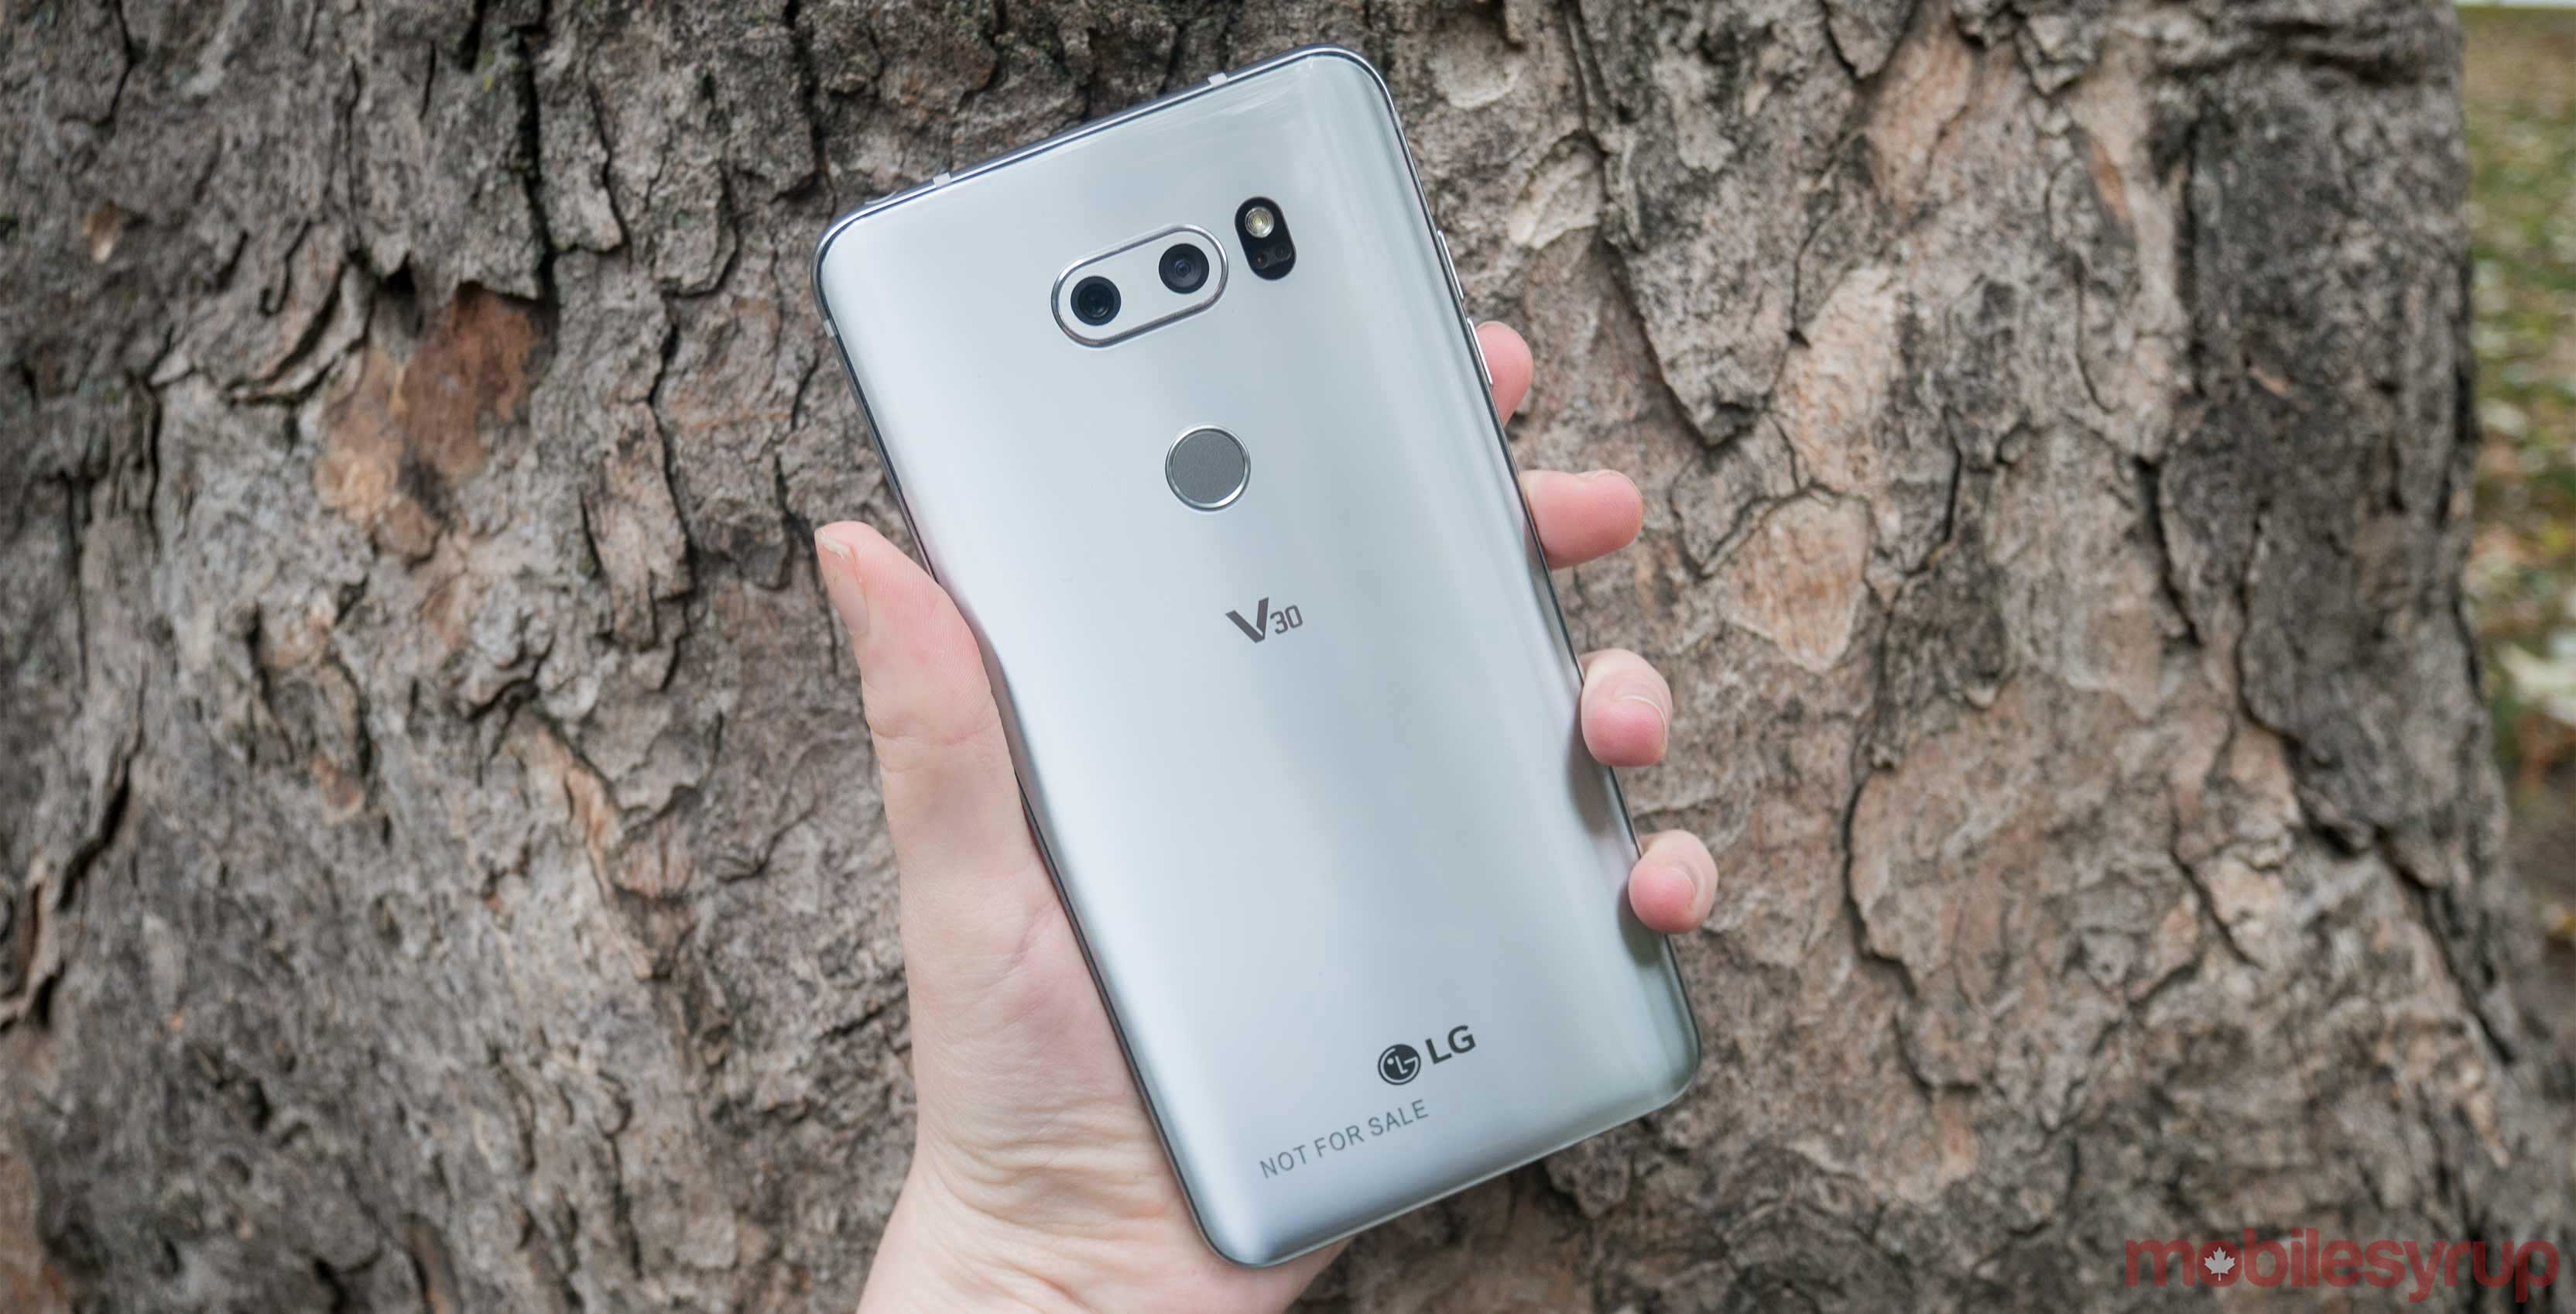 LG V30 users report receiving Android 8 0 Oreo update in Canada